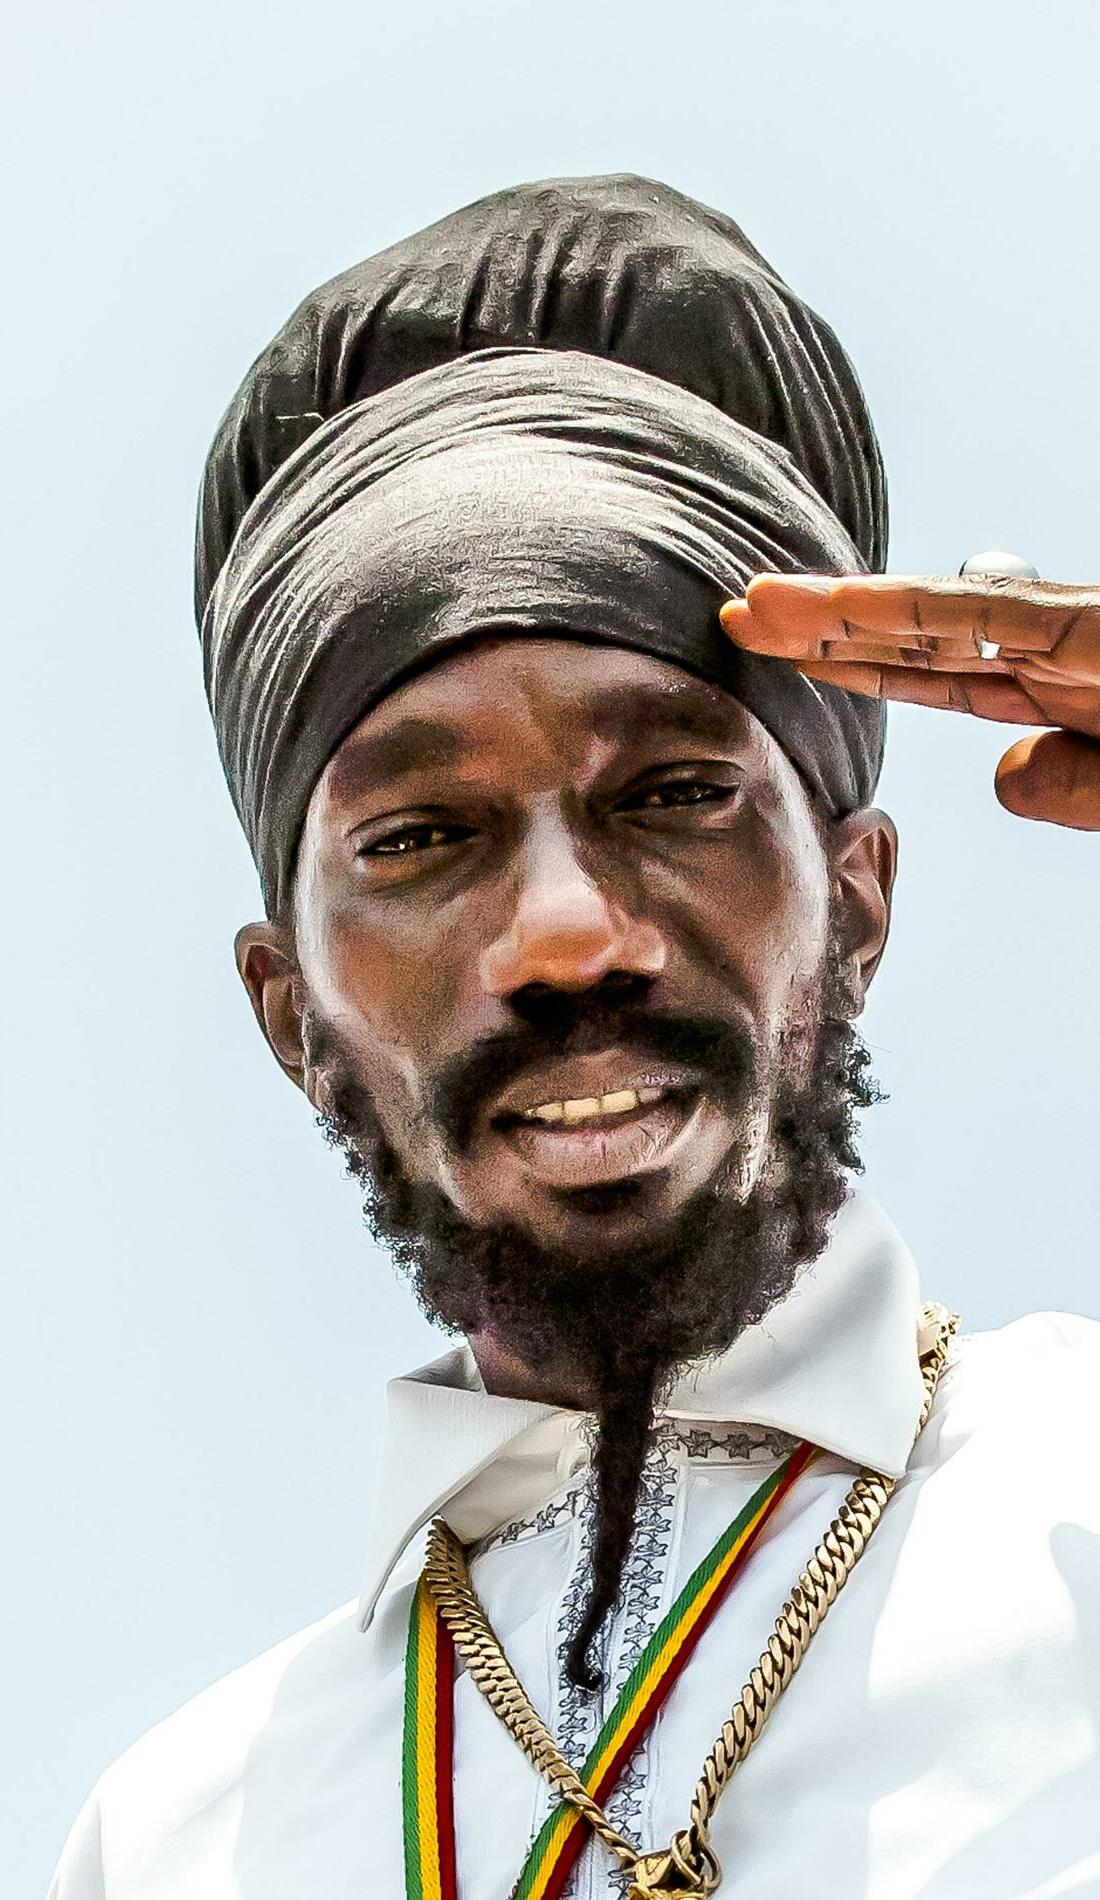 A Sizzla live event